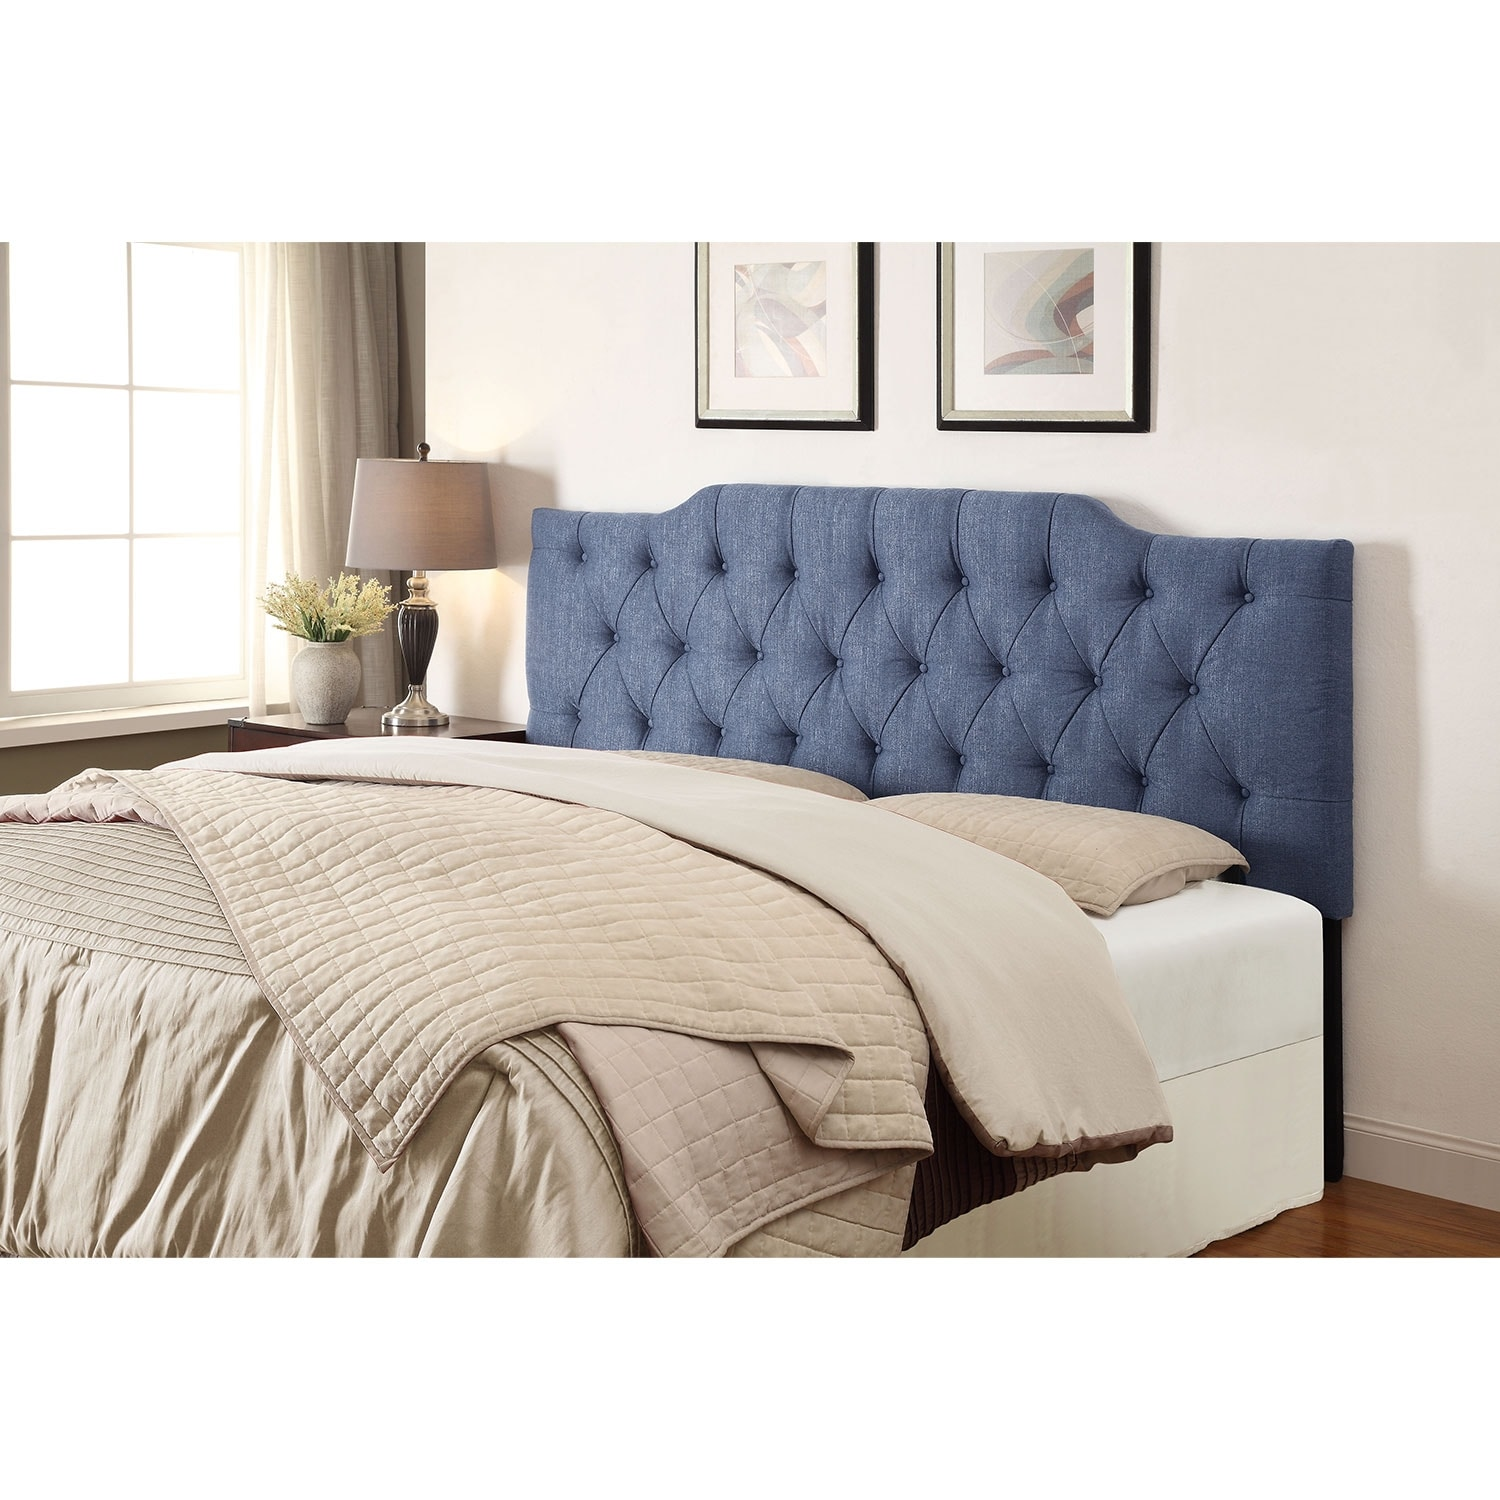 Smith King/California King Headboard - Denim